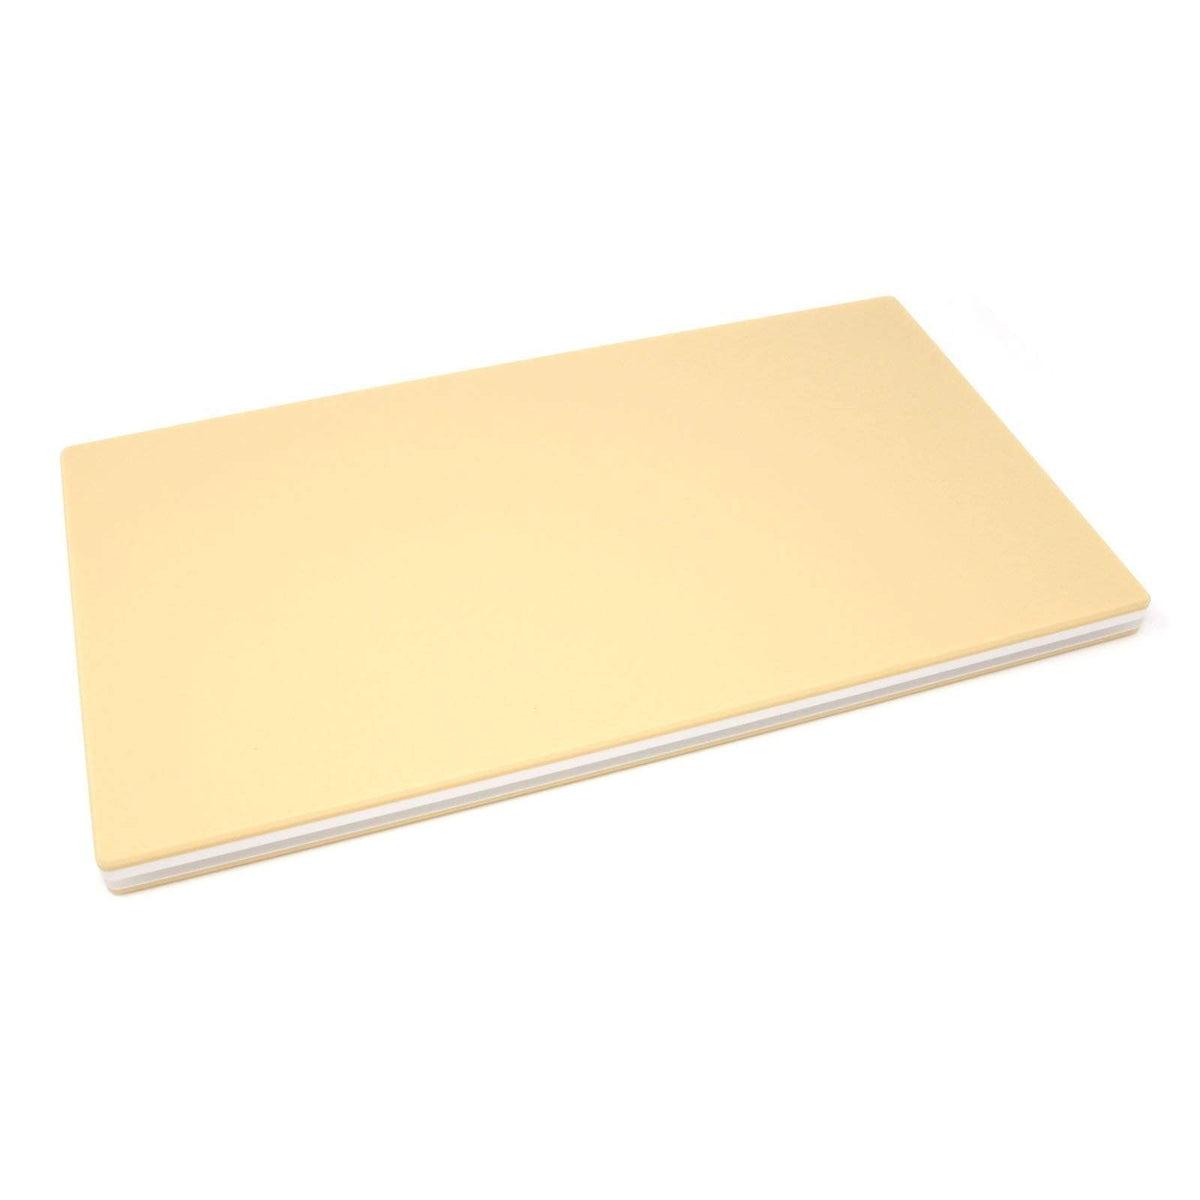 Hasegawa Wood Core Soft Rubber Cutting Board Cutting Boards